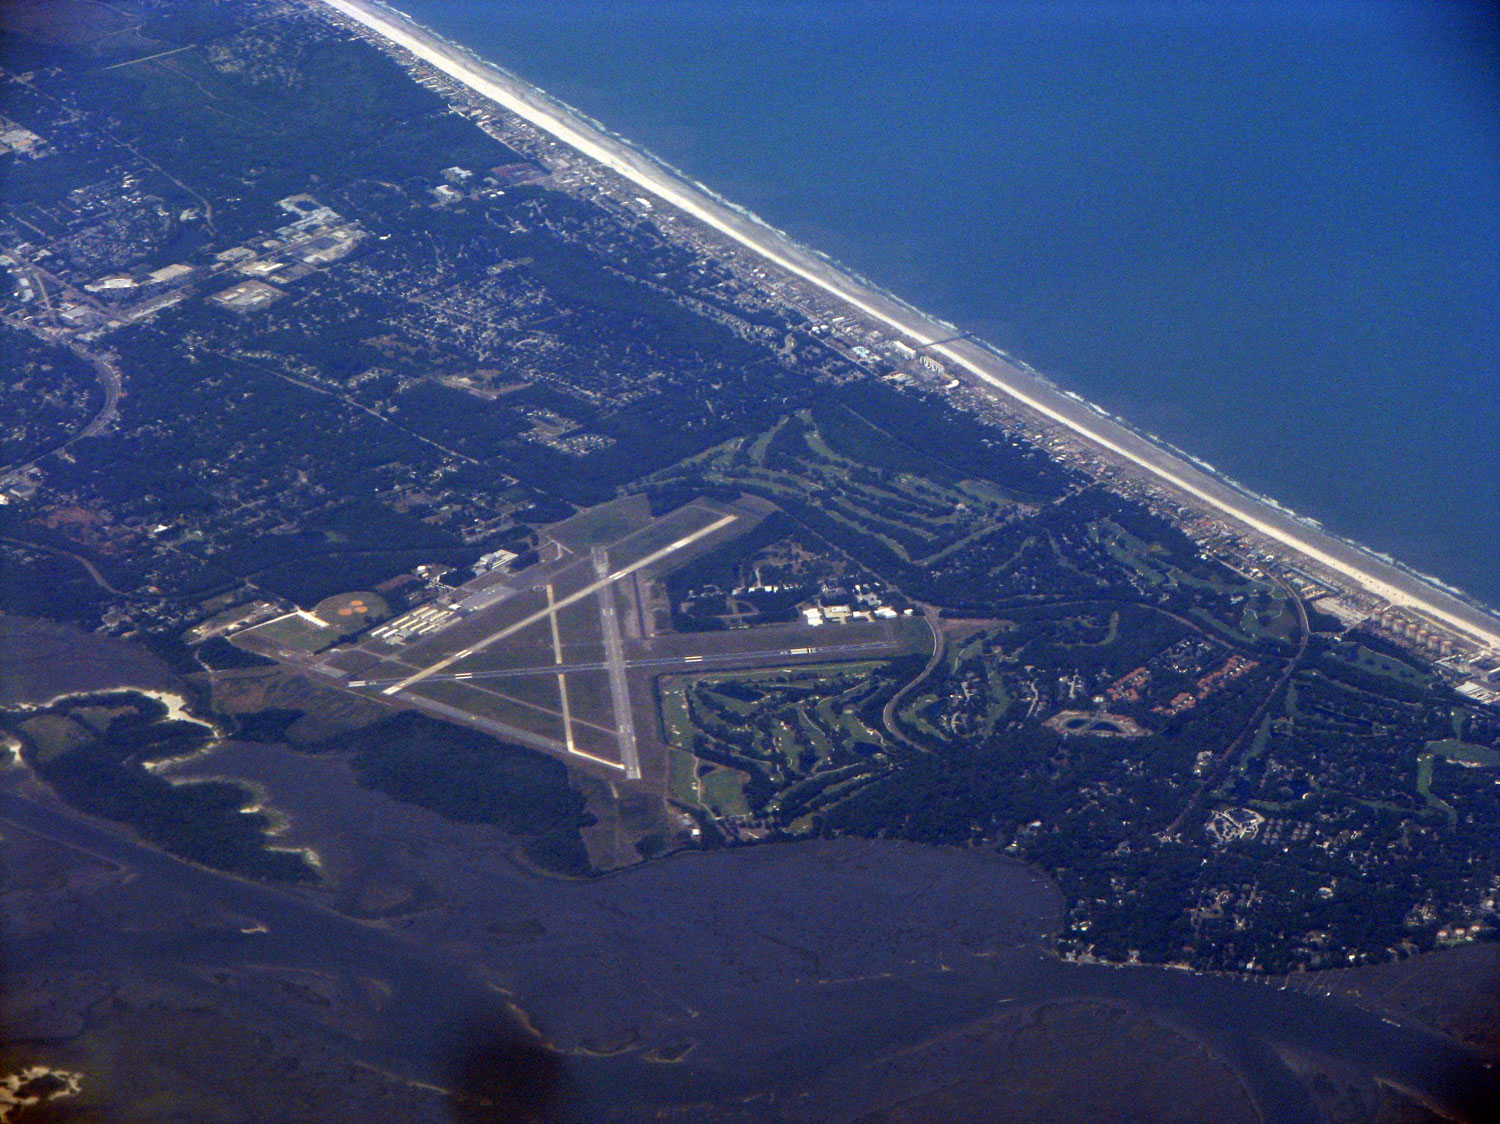 This golf course/beach resort looks like it has its own airport.